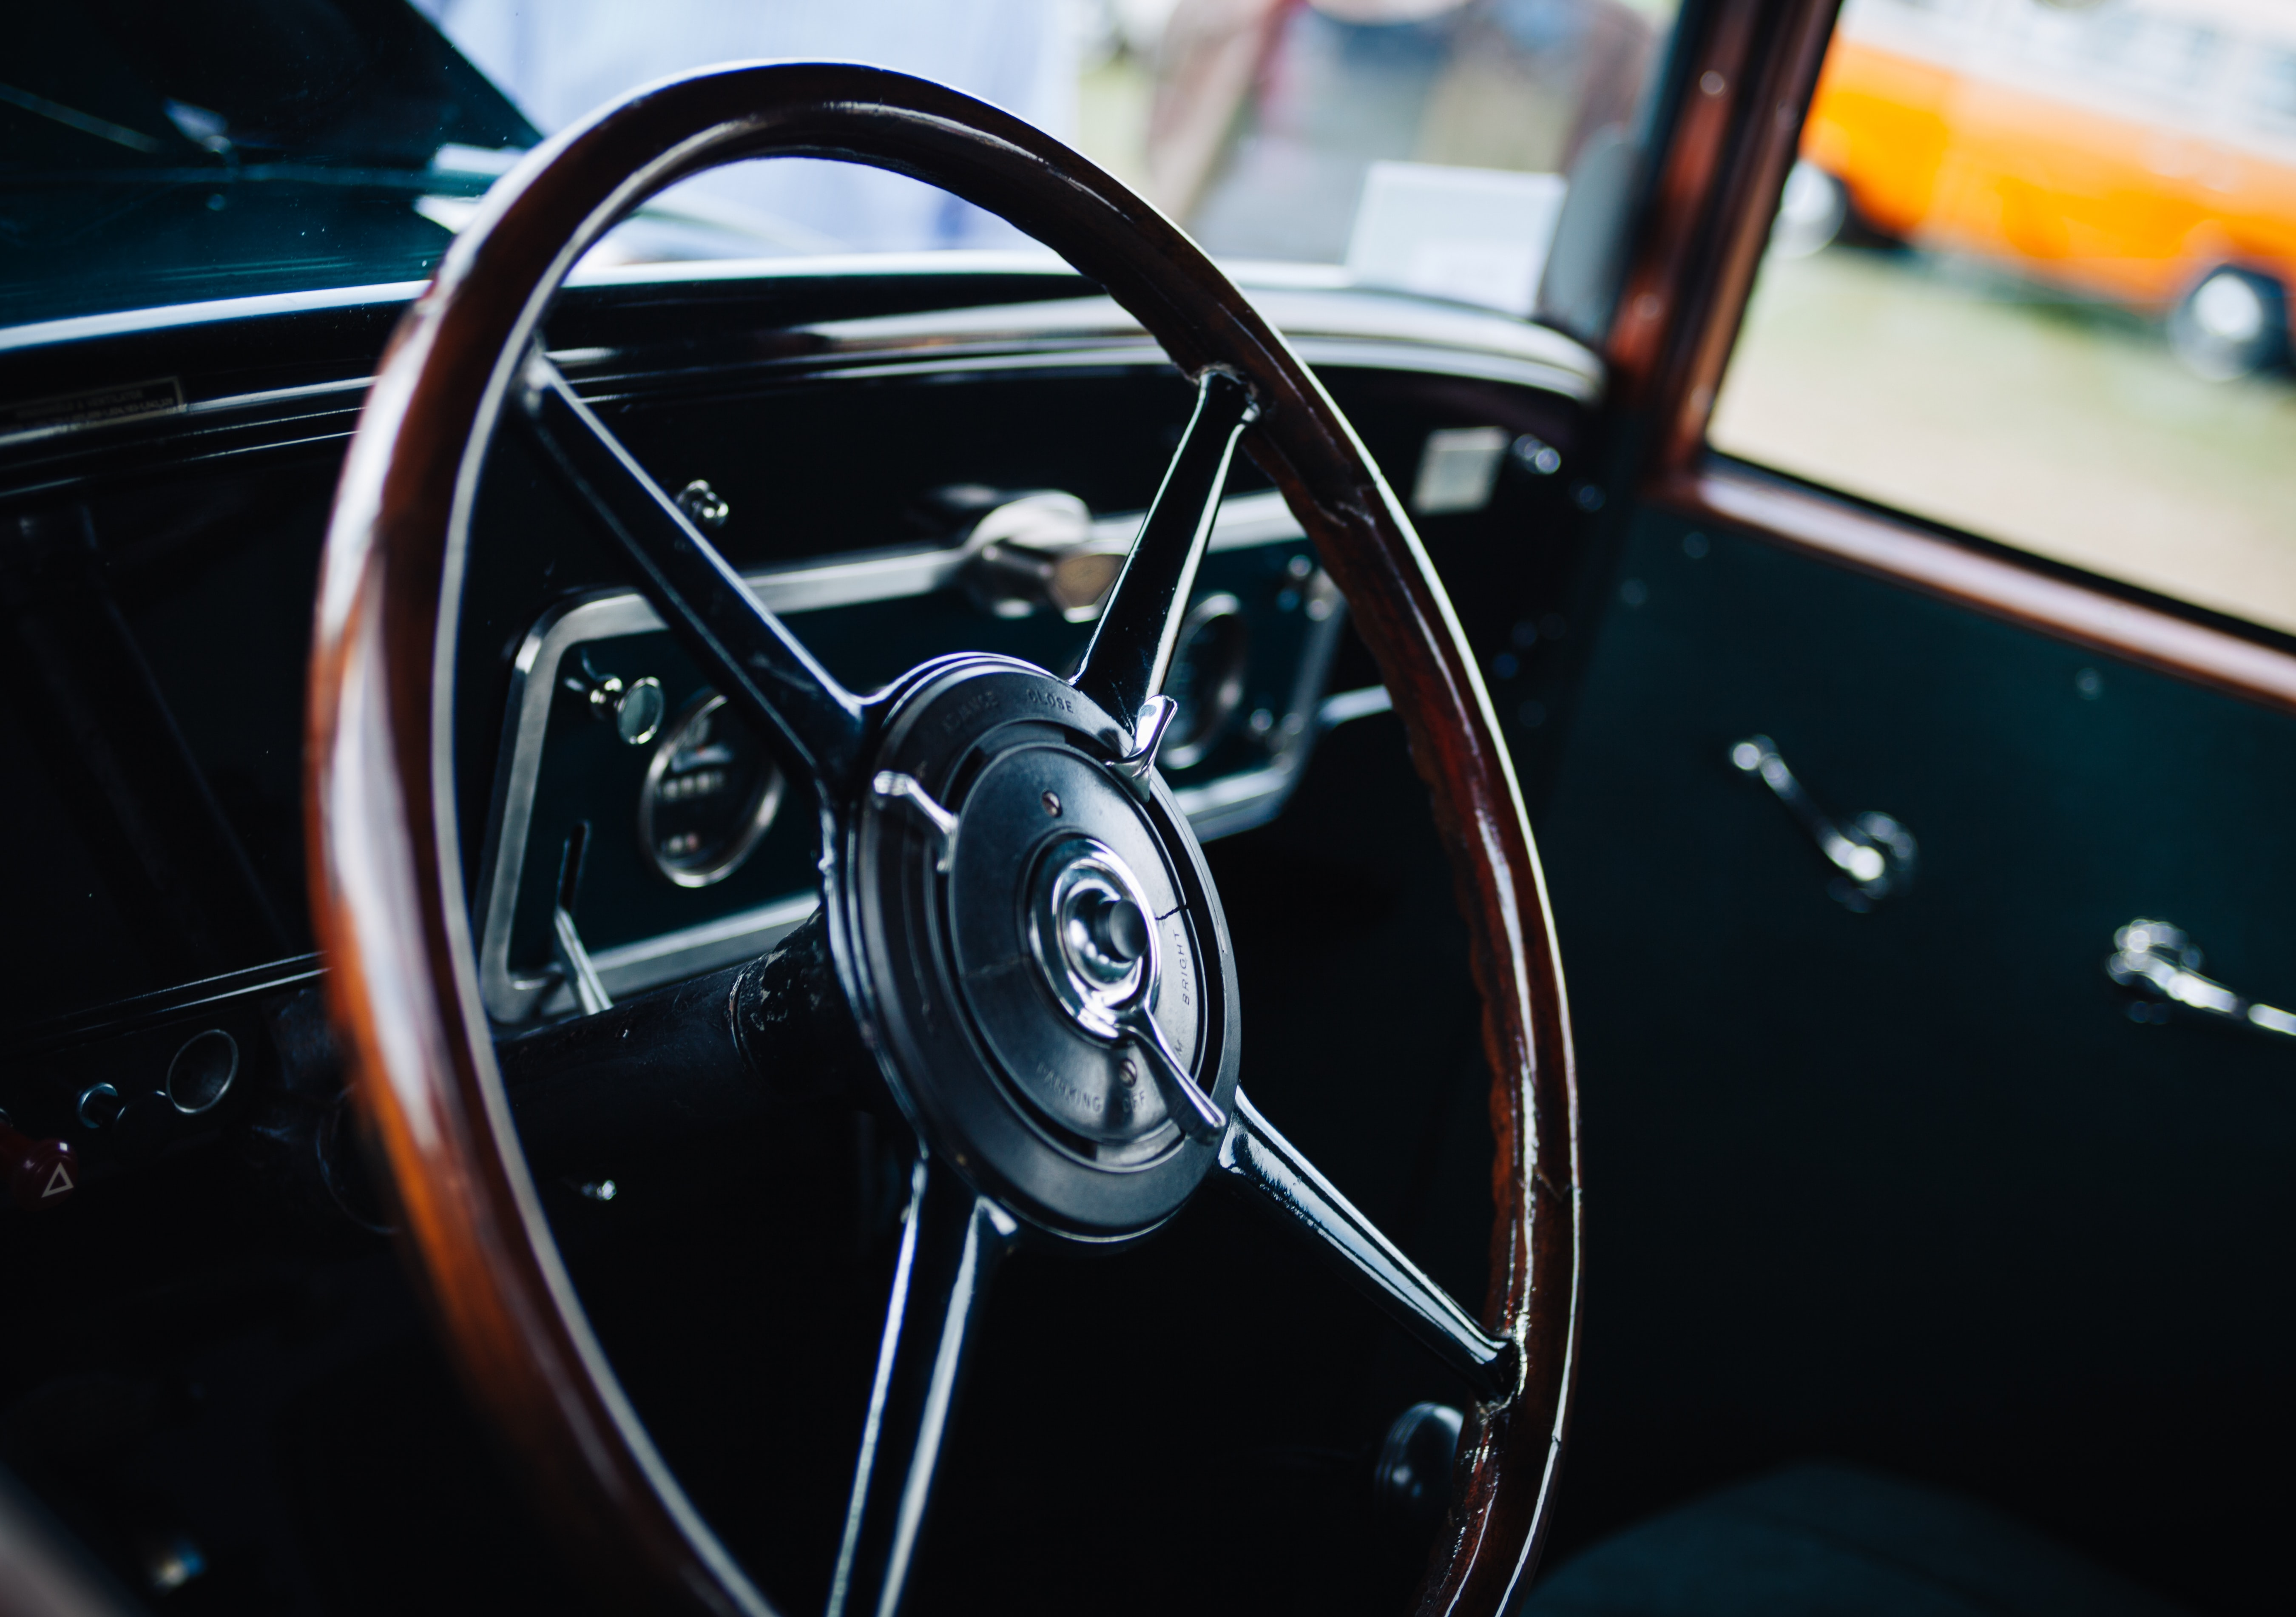 Old vintage car interior with the wooden frame steering wheel